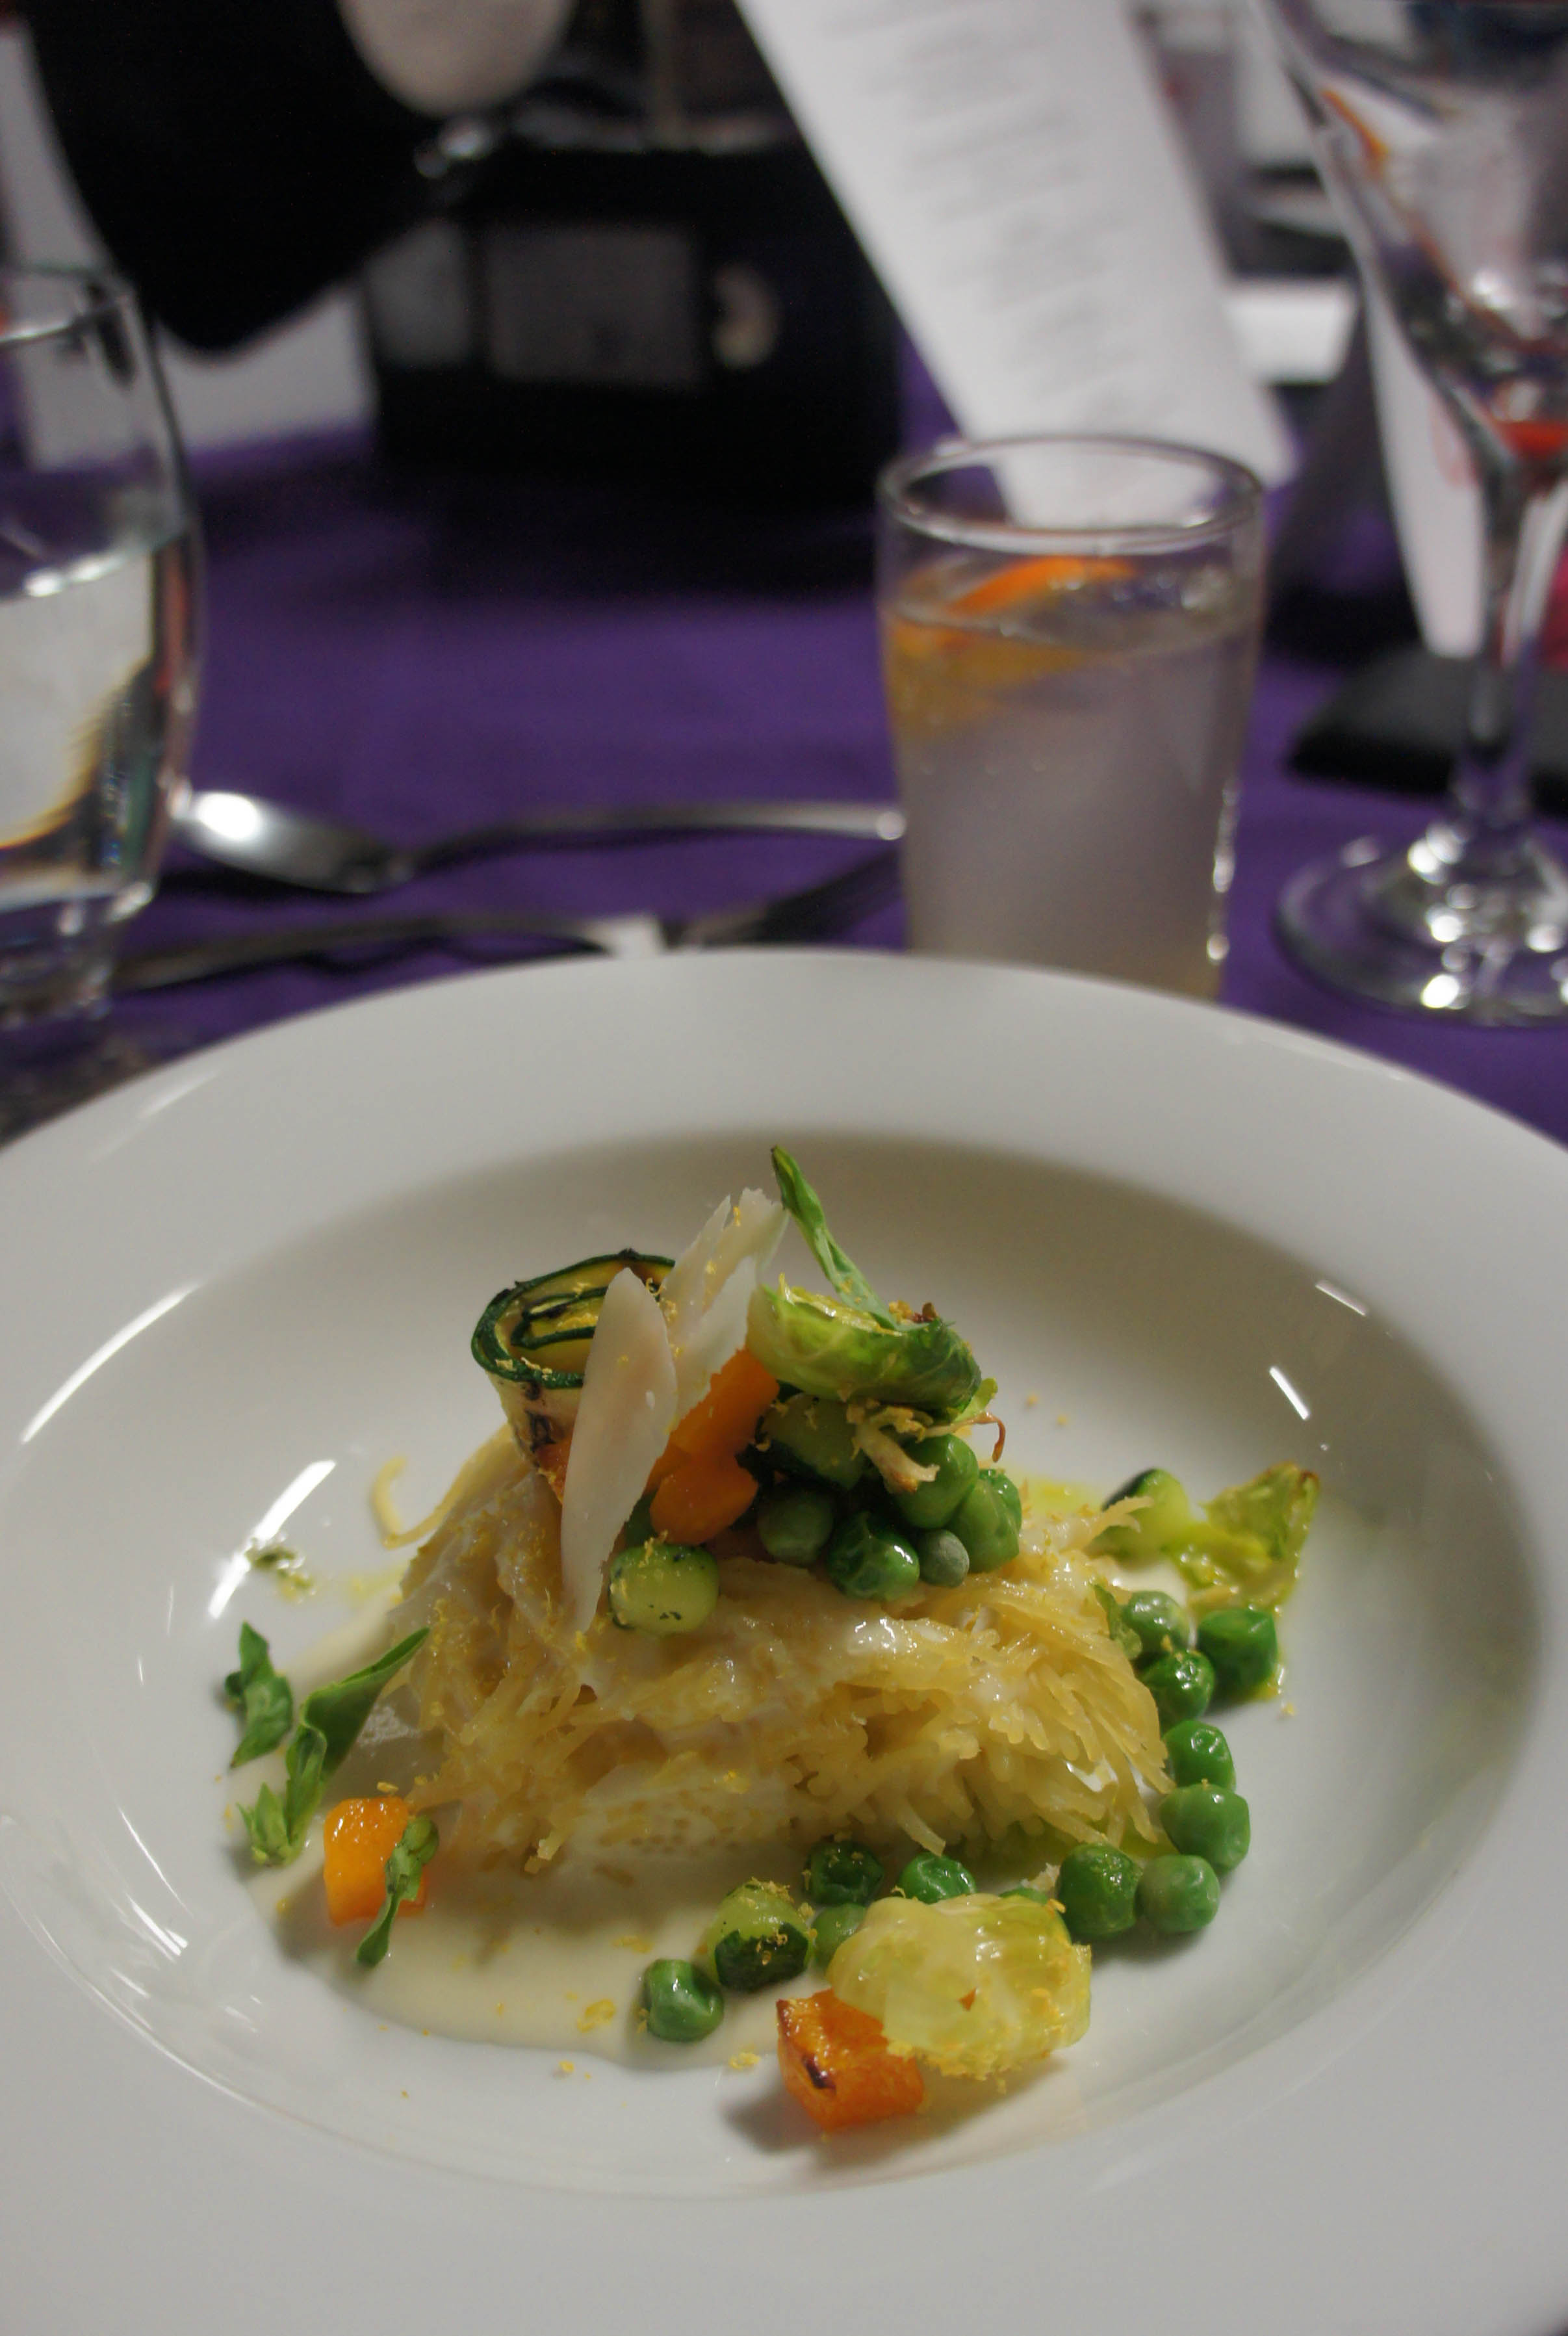 """Chef Marc Doiron captured the feel of 1970s cuisine with a """"pasta you can't refuse"""" — pasta primavera, parmesan foam and vegetables formato. Photo by Katie Shapiro, Ottawa Magazine."""